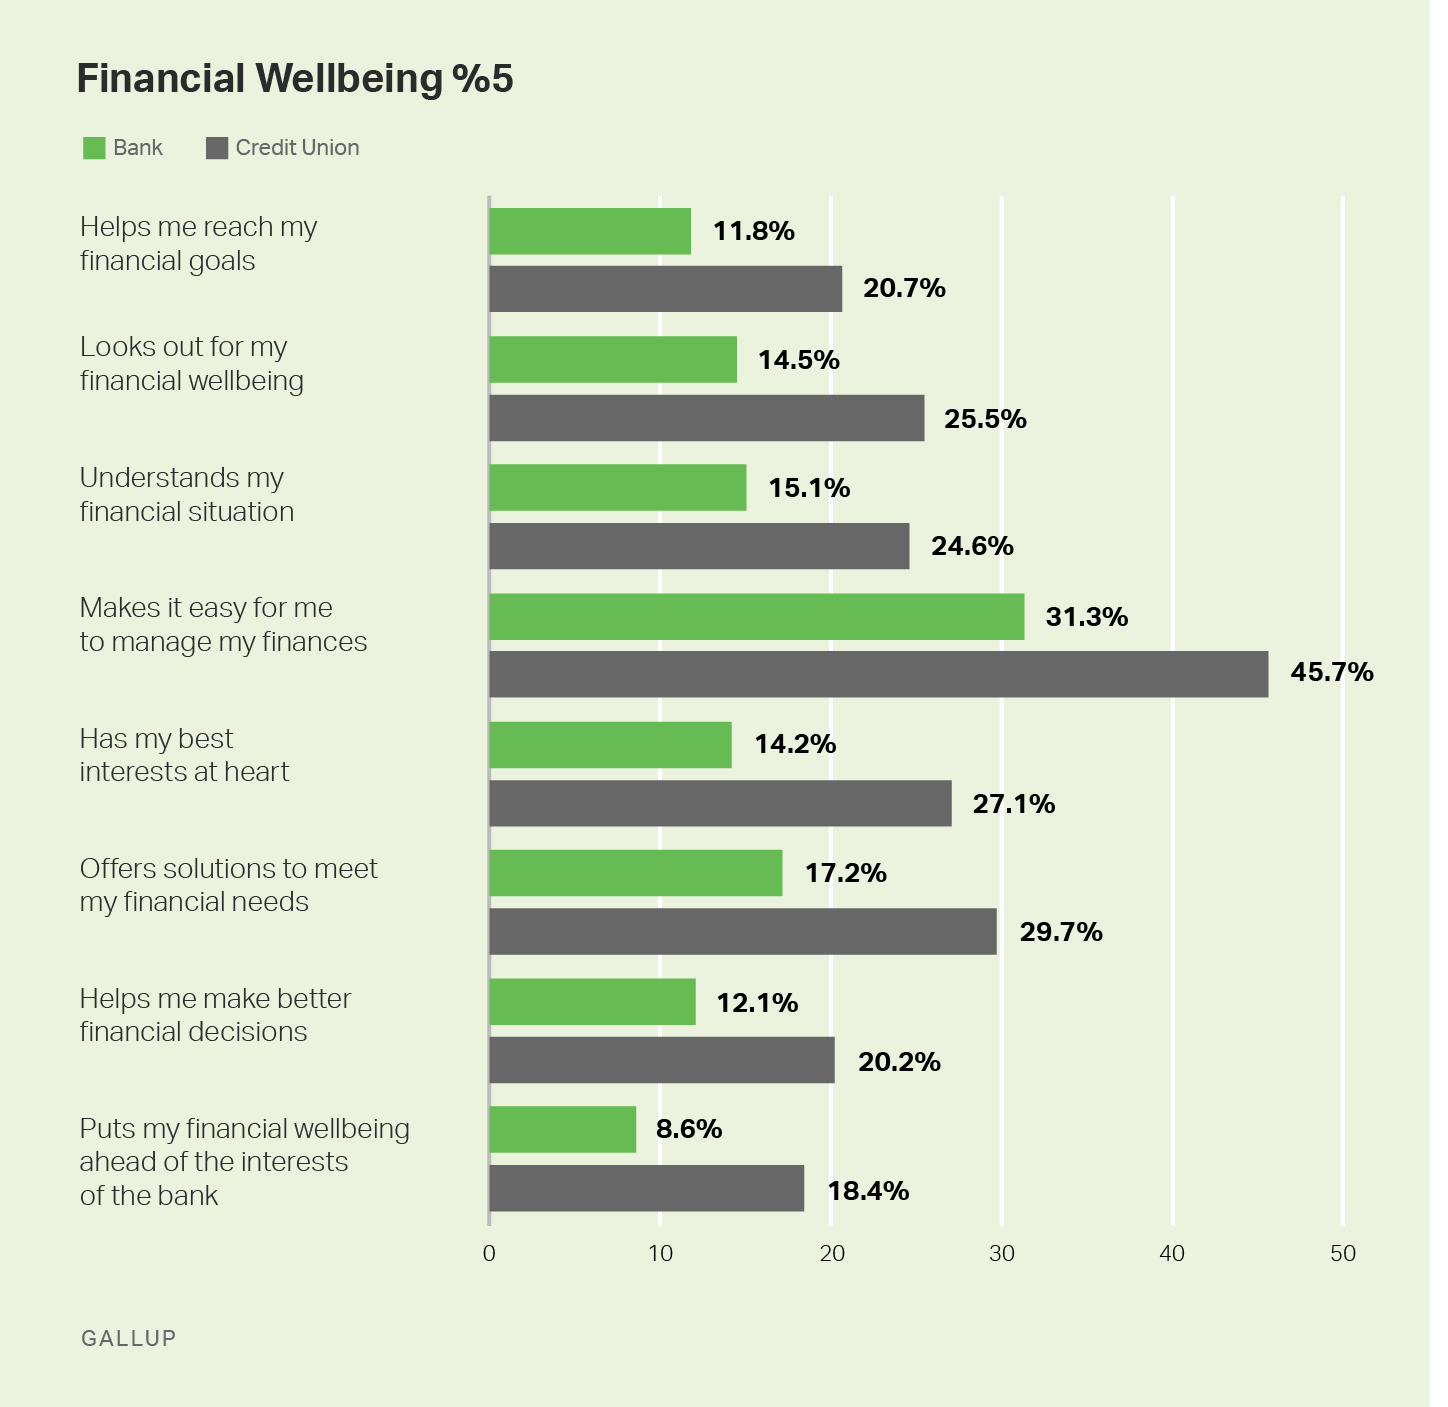 Graphic showing %5 responses to statements about financial wellbeing comparing credit union customers with bank customers.